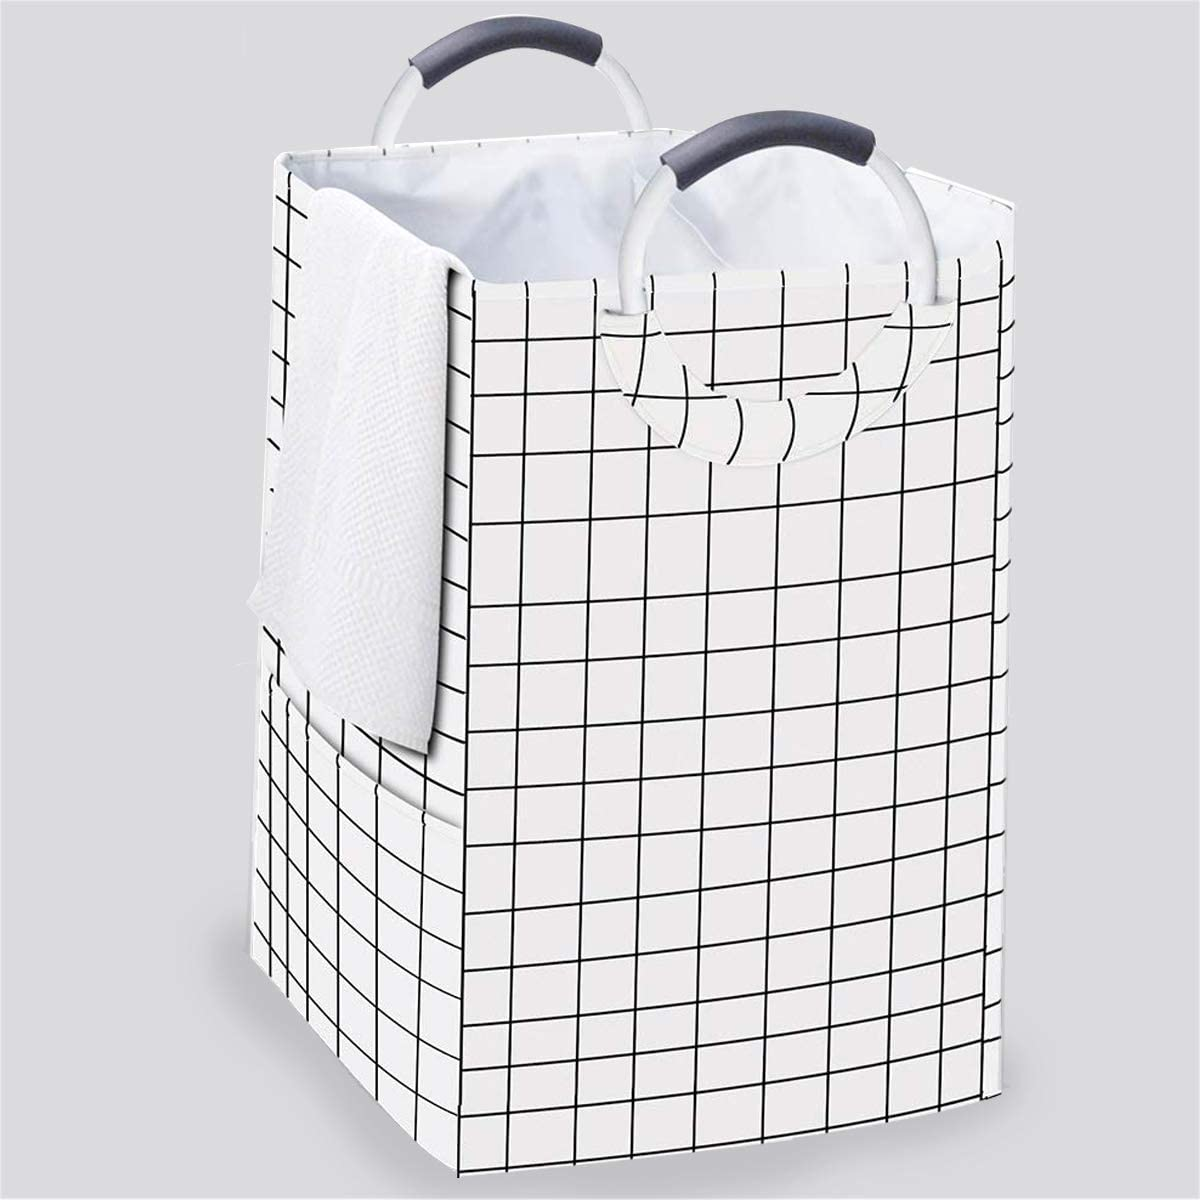 homyfort Large Laundry Hamper Basket